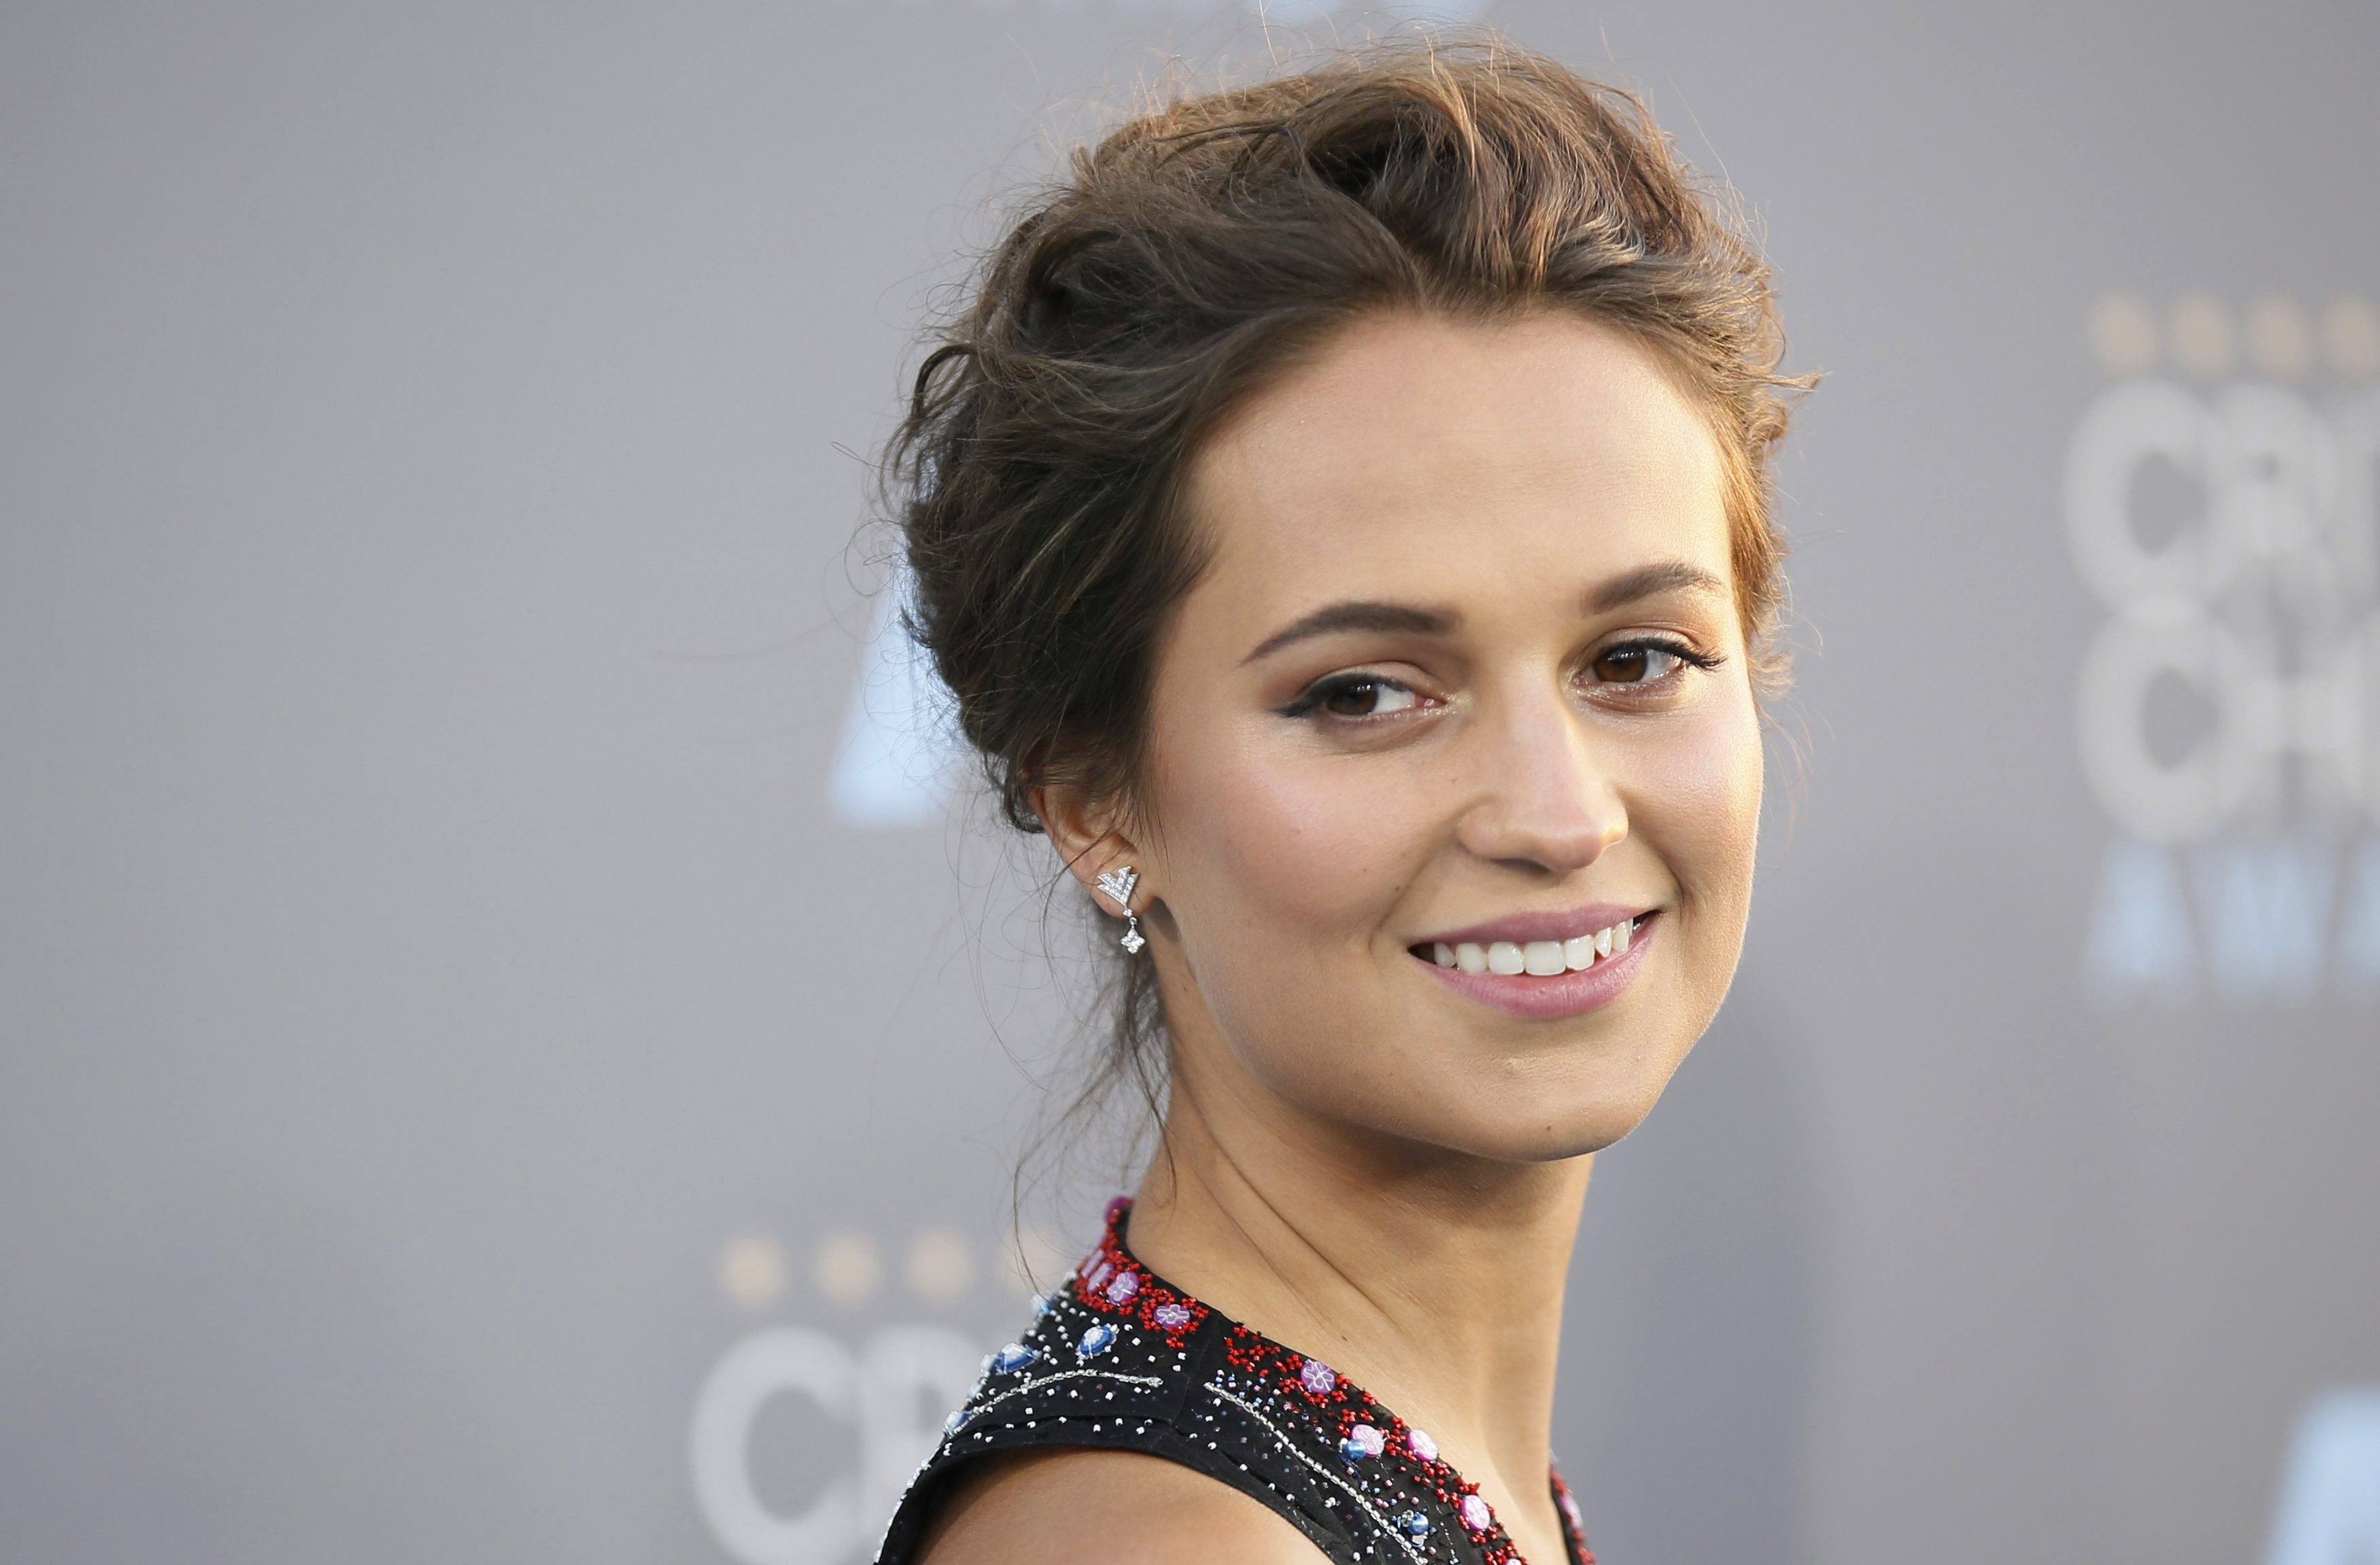 alicia-vikander-mary-katrantzou-at-2016-critics-choice-awards-3